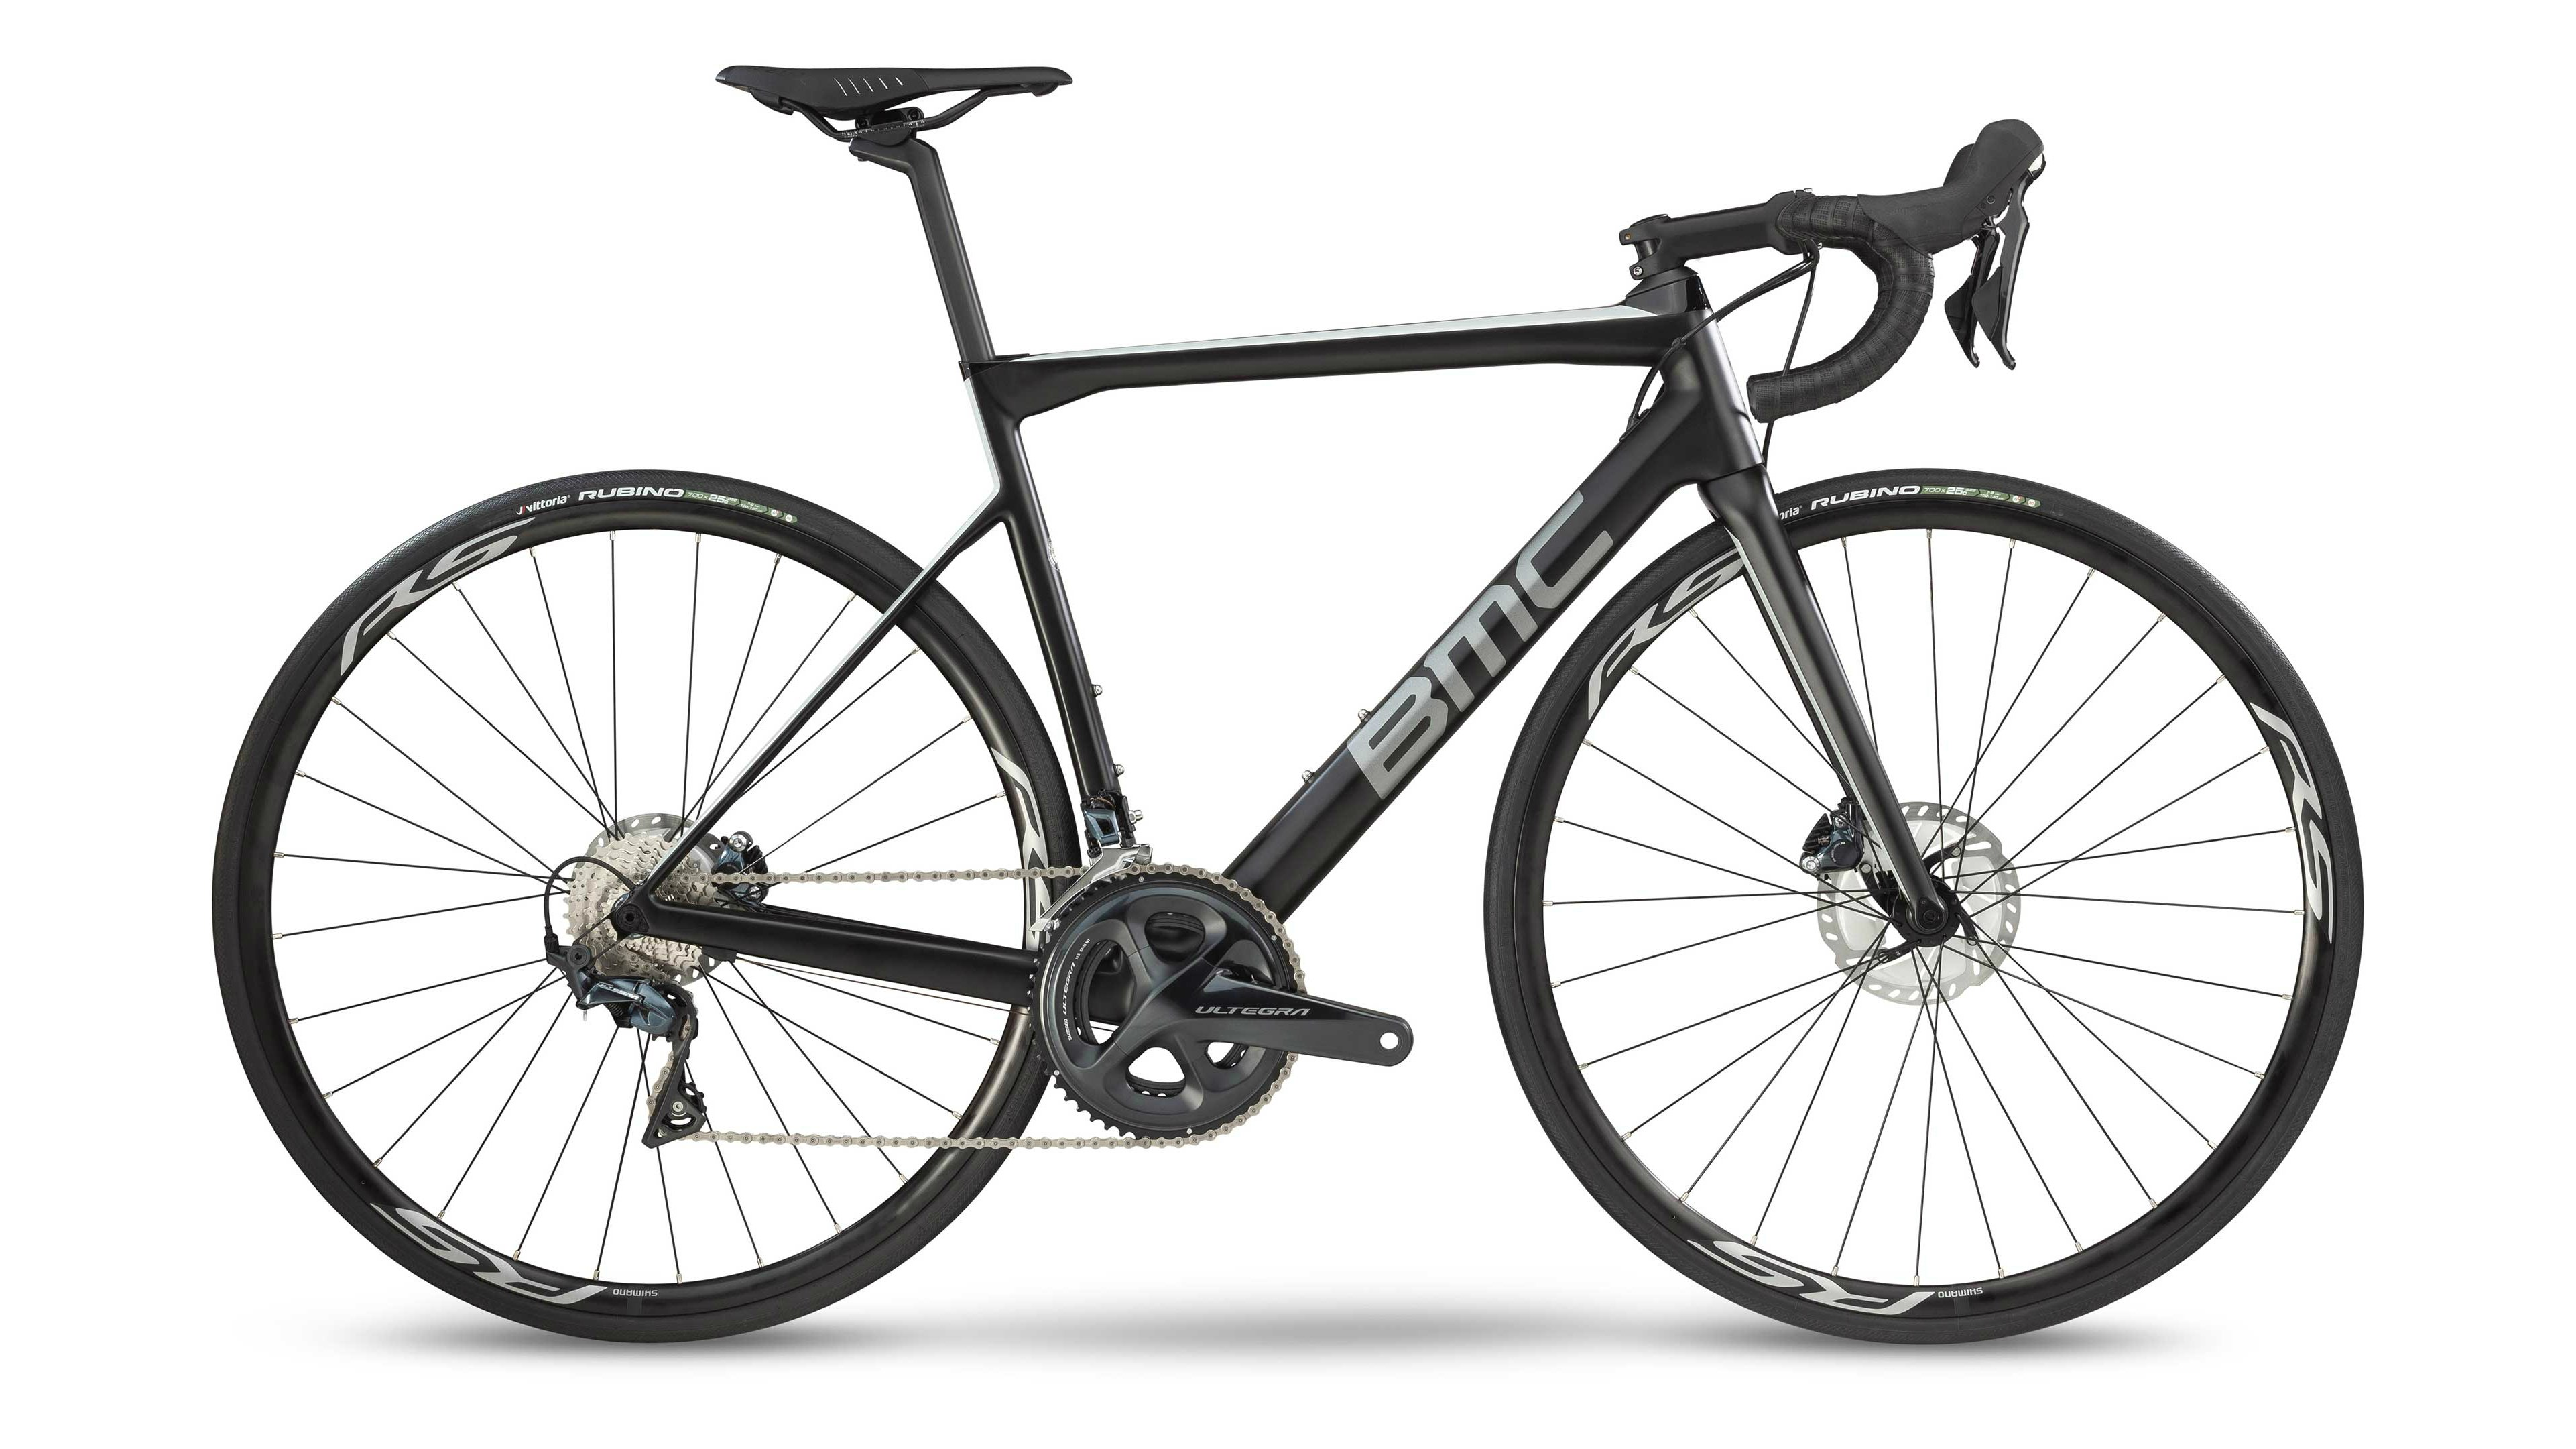 c5da55b8cfb It only takes one look at the Teammachine to discern that this is a fast  bike. With its angular looks, tapered tubes and aggressive geometry, ...